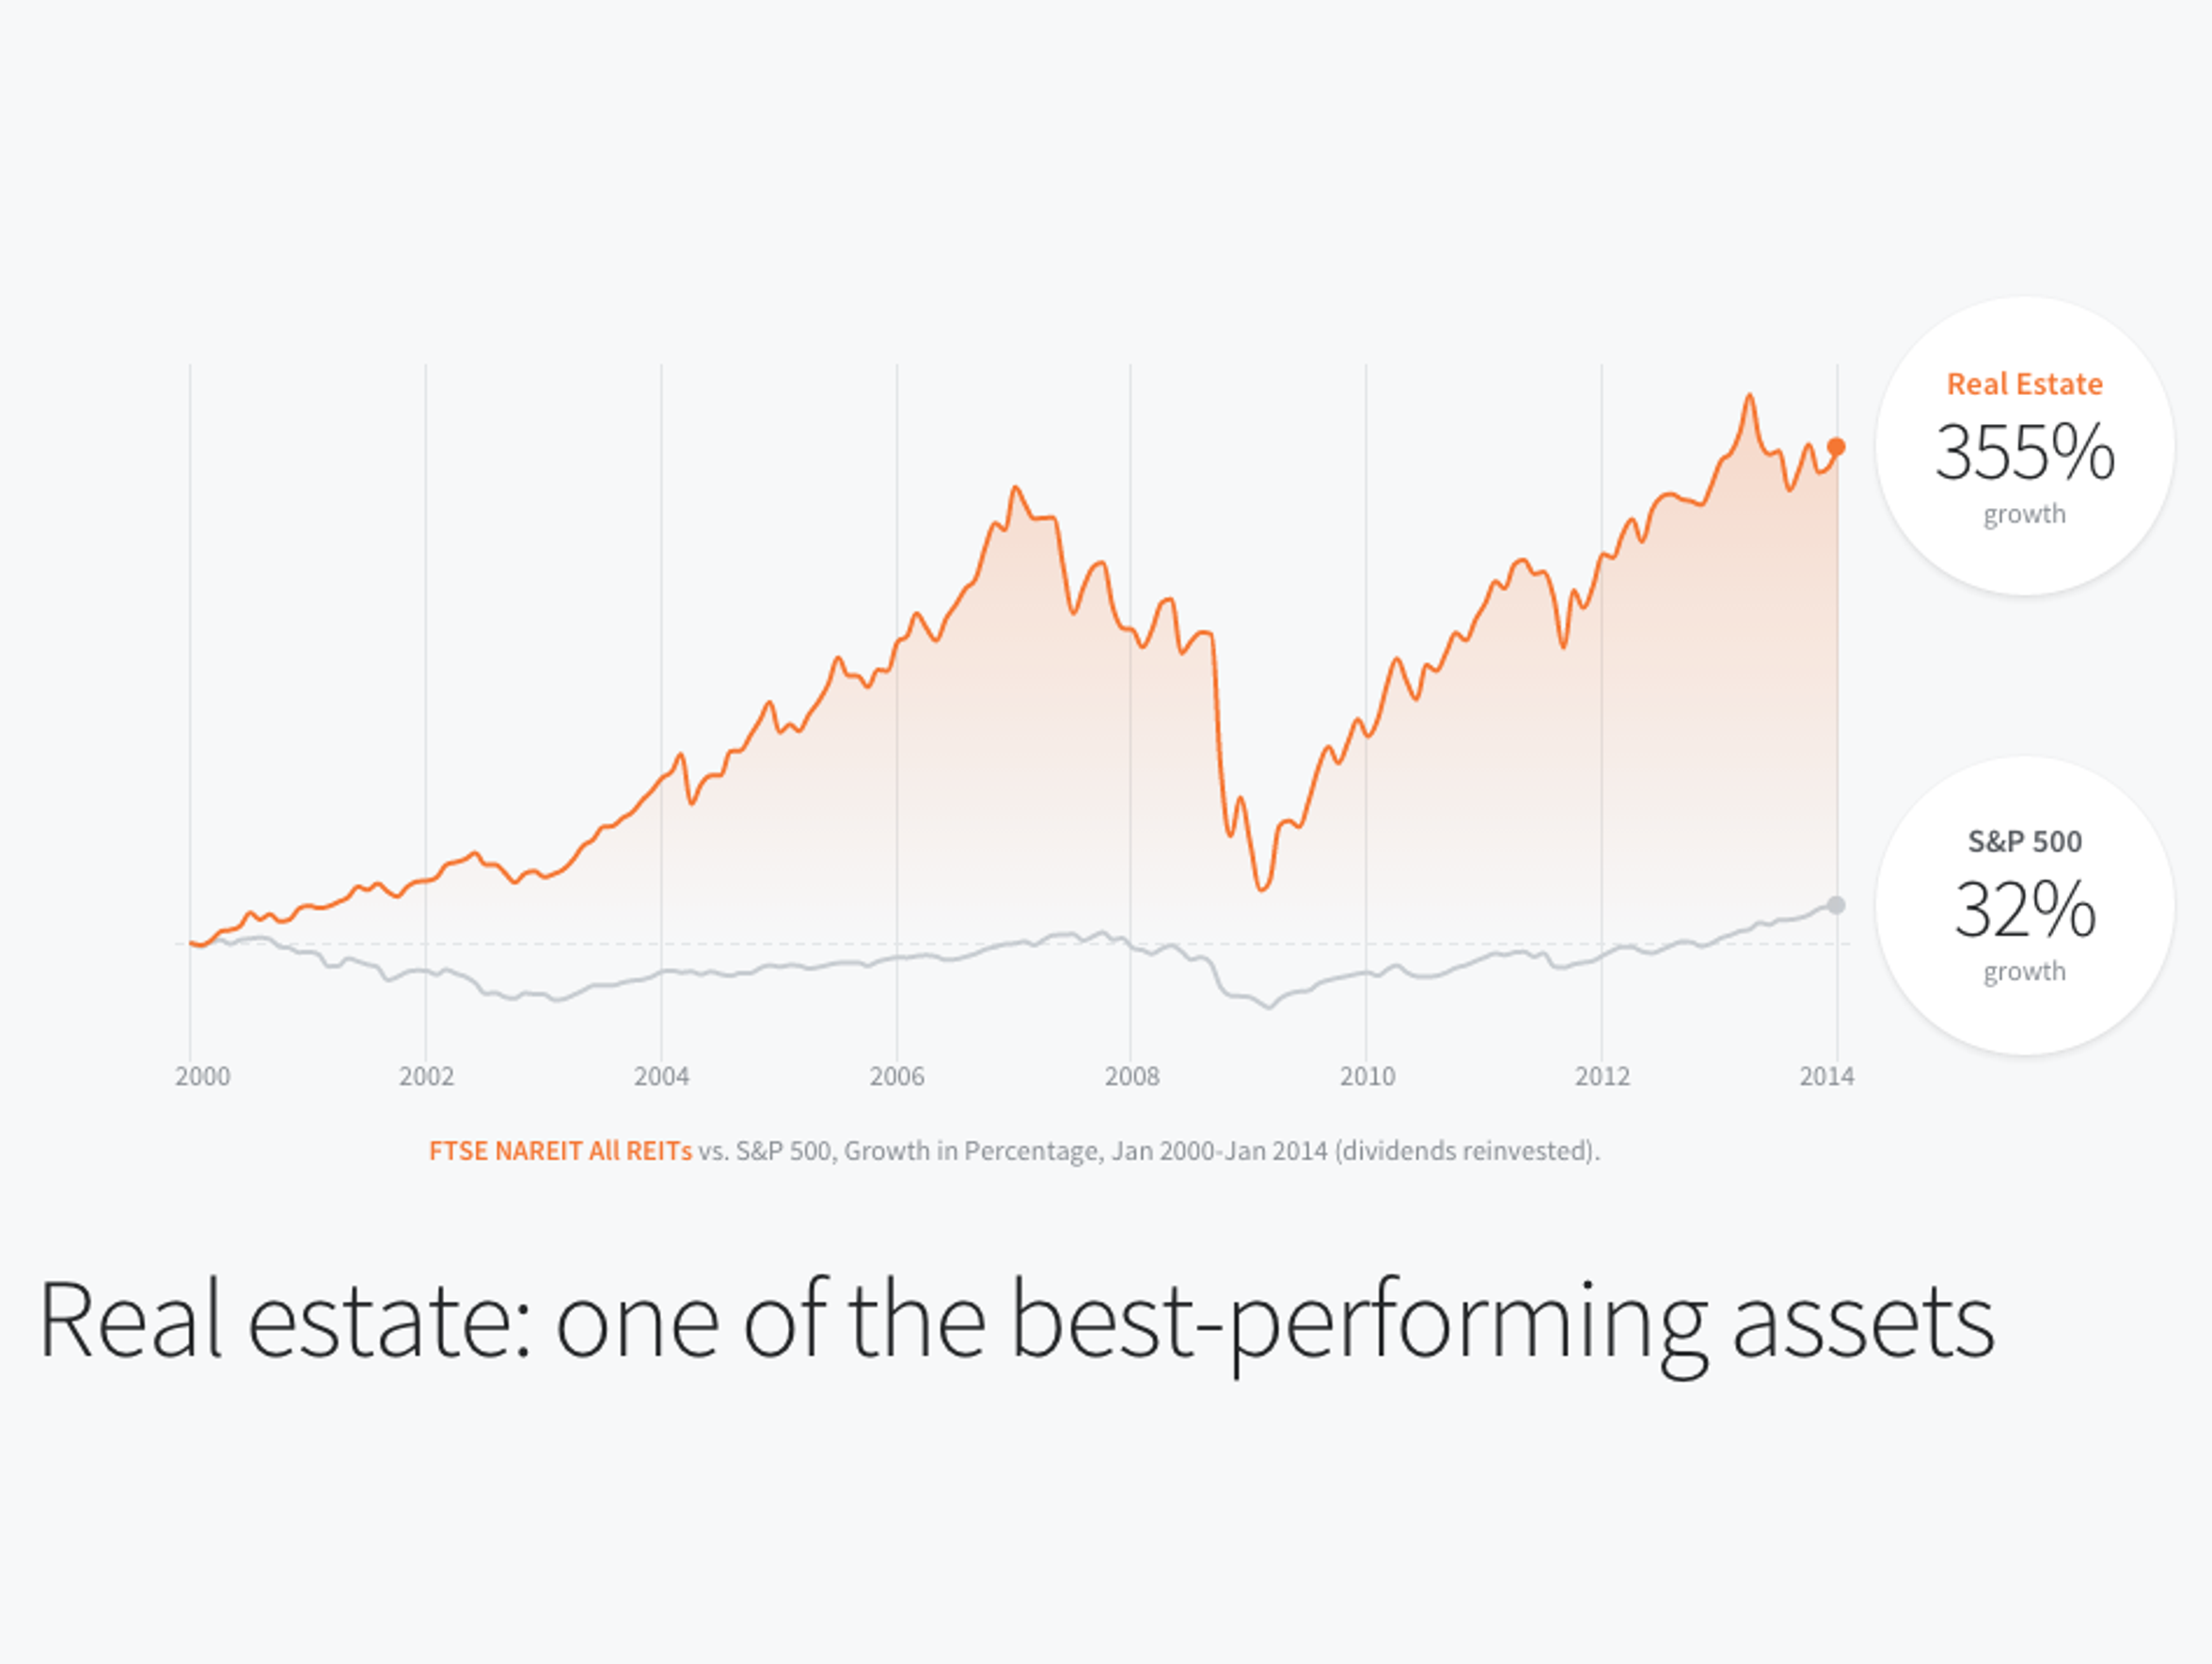 One of the best-performing assets